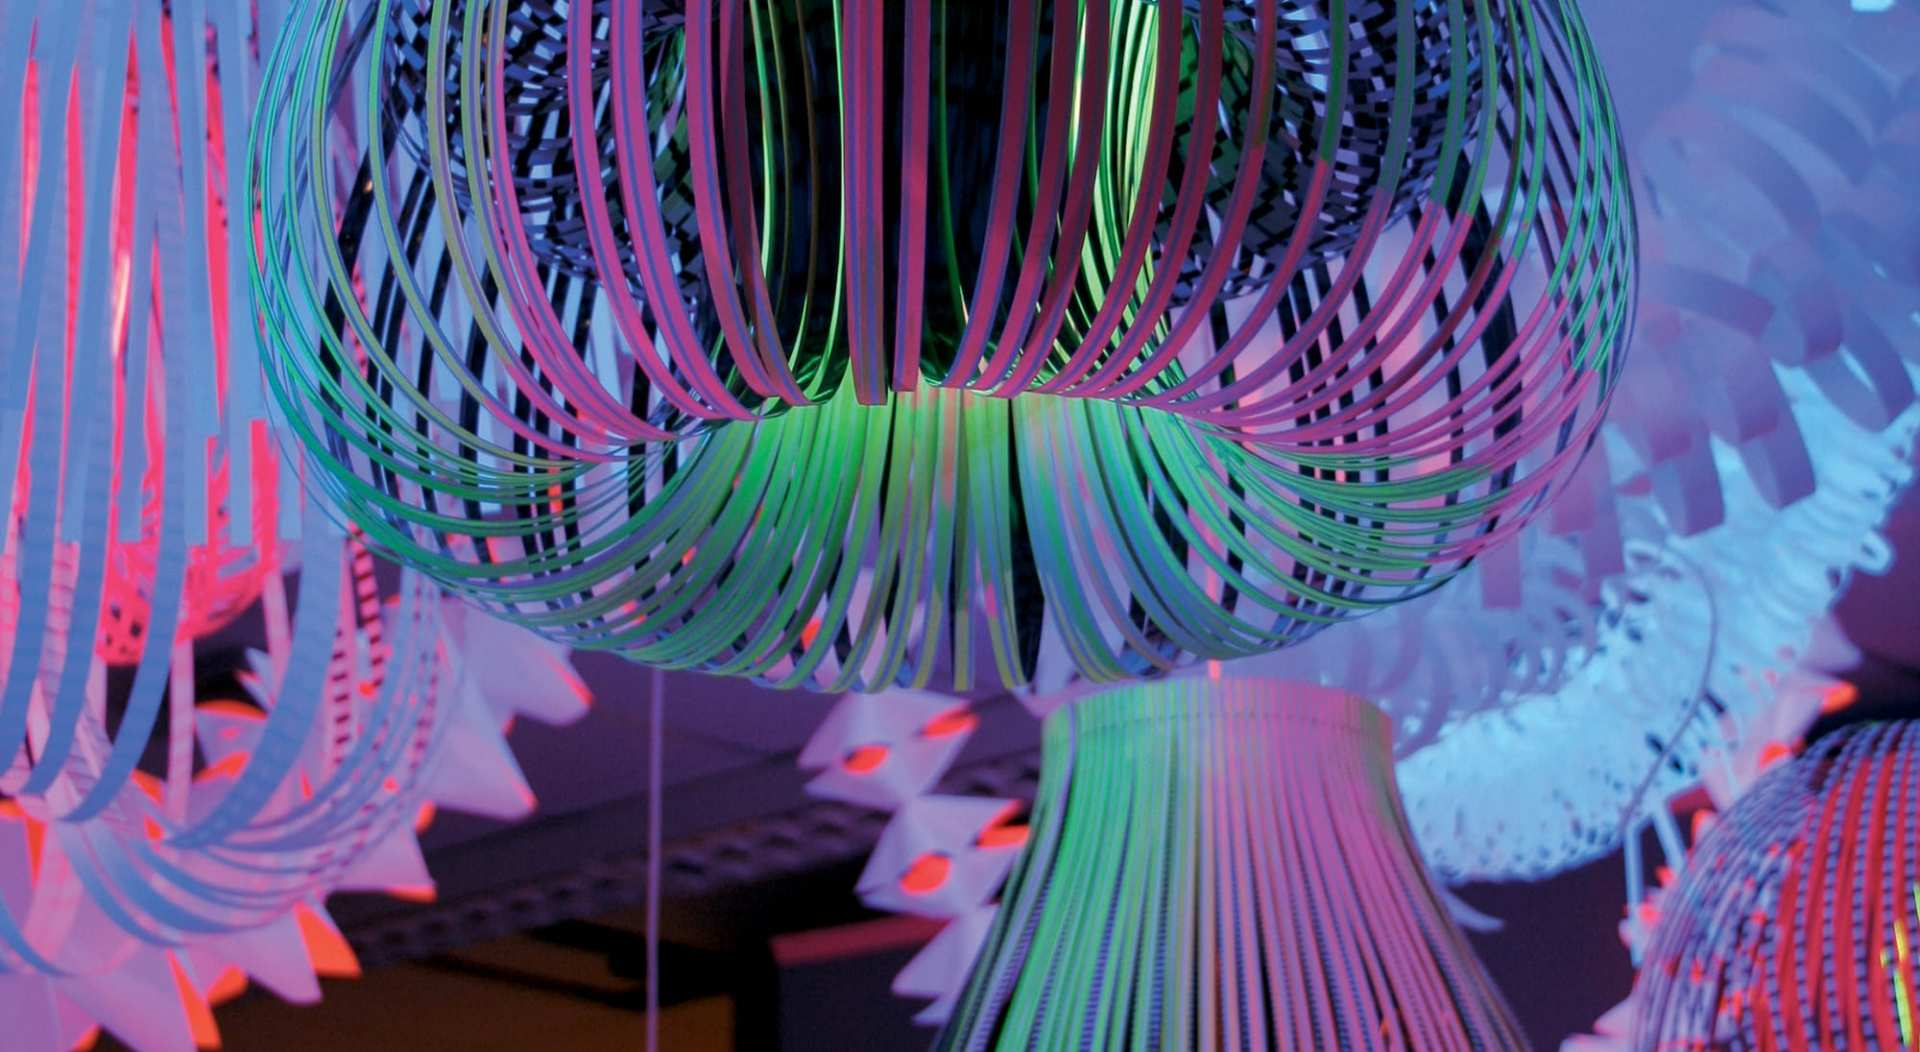 paper_light_installation_setdesign_design__art_paula_arntzen